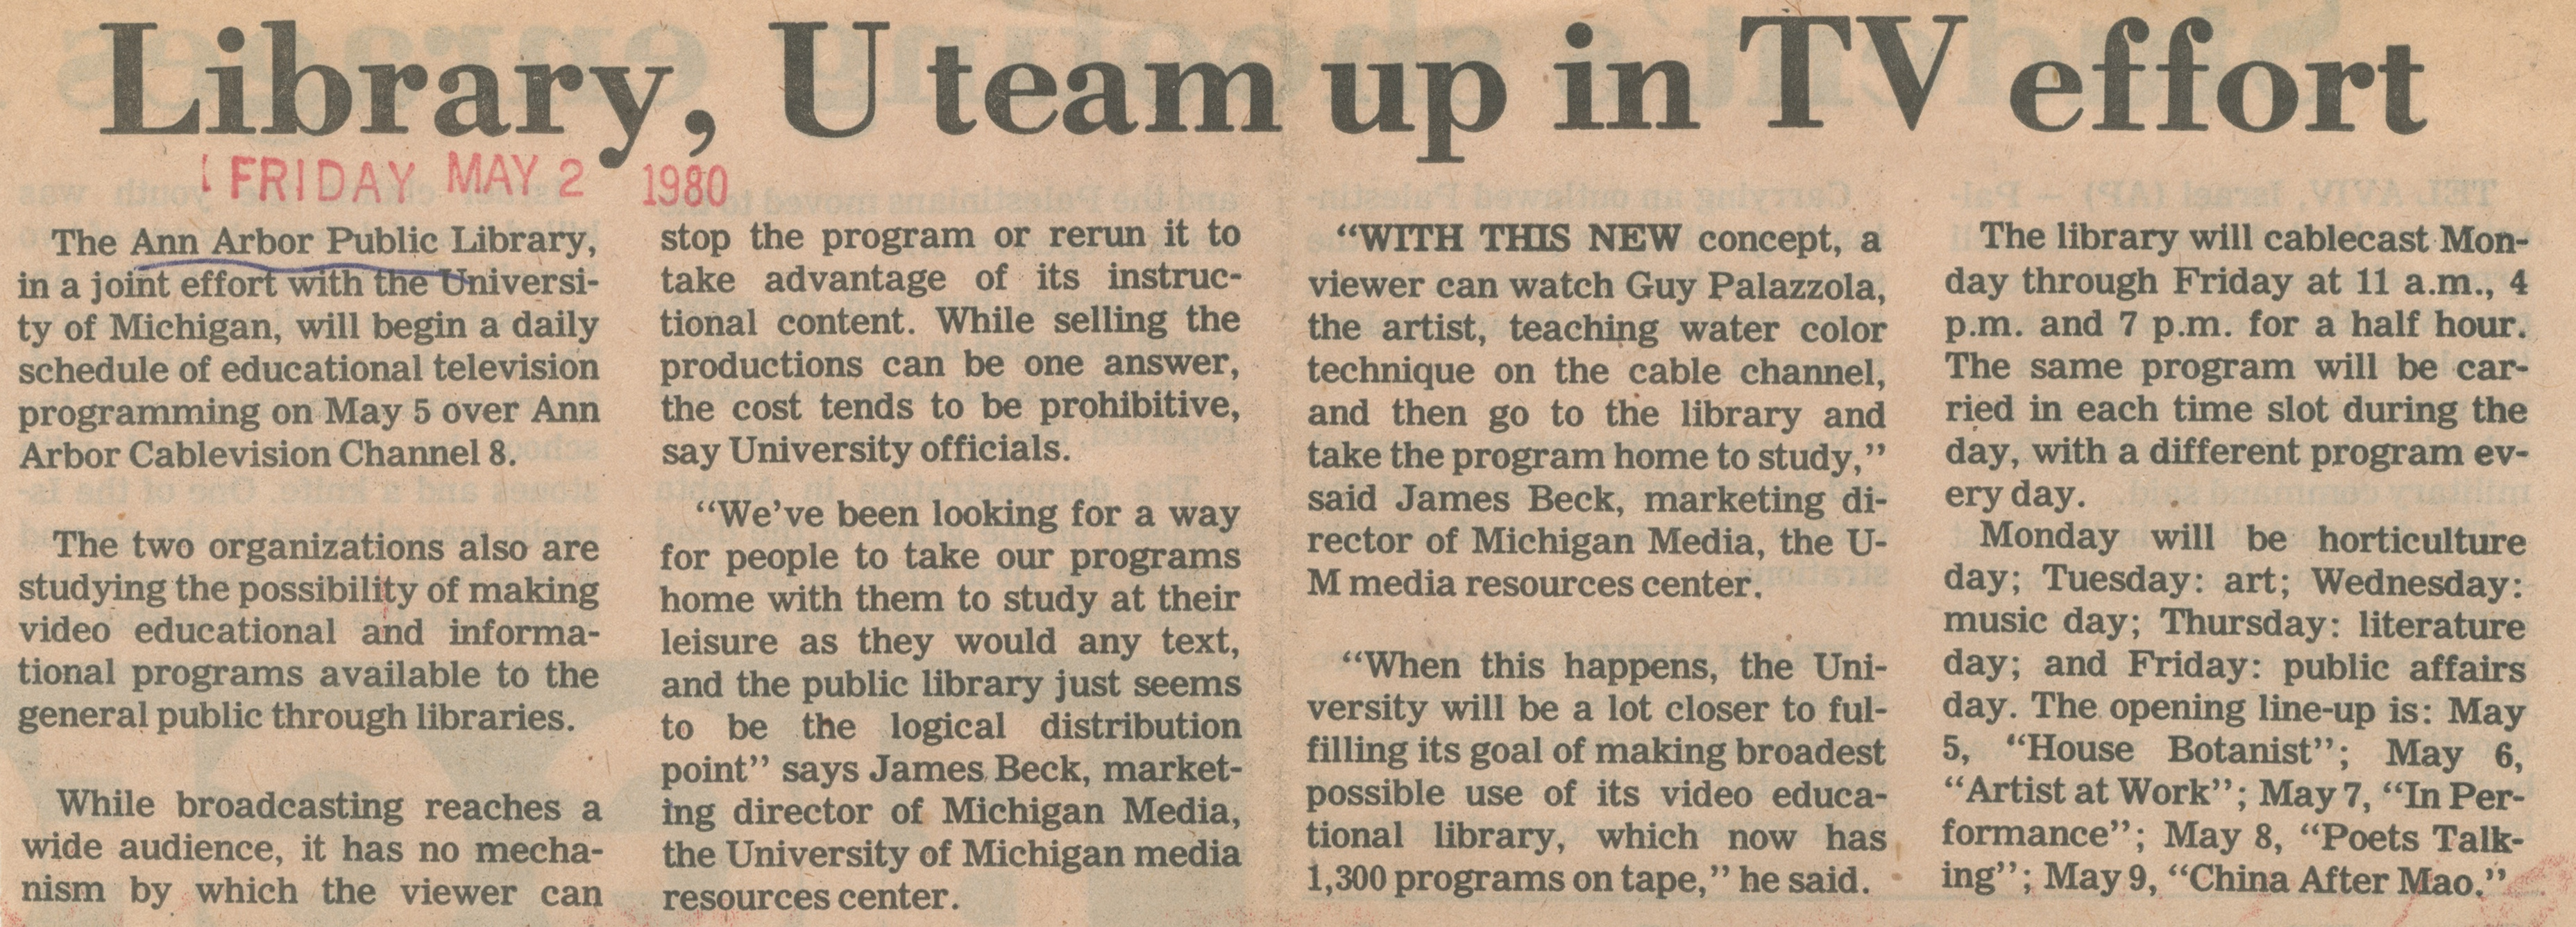 Library, U Team Up In TV Effort image